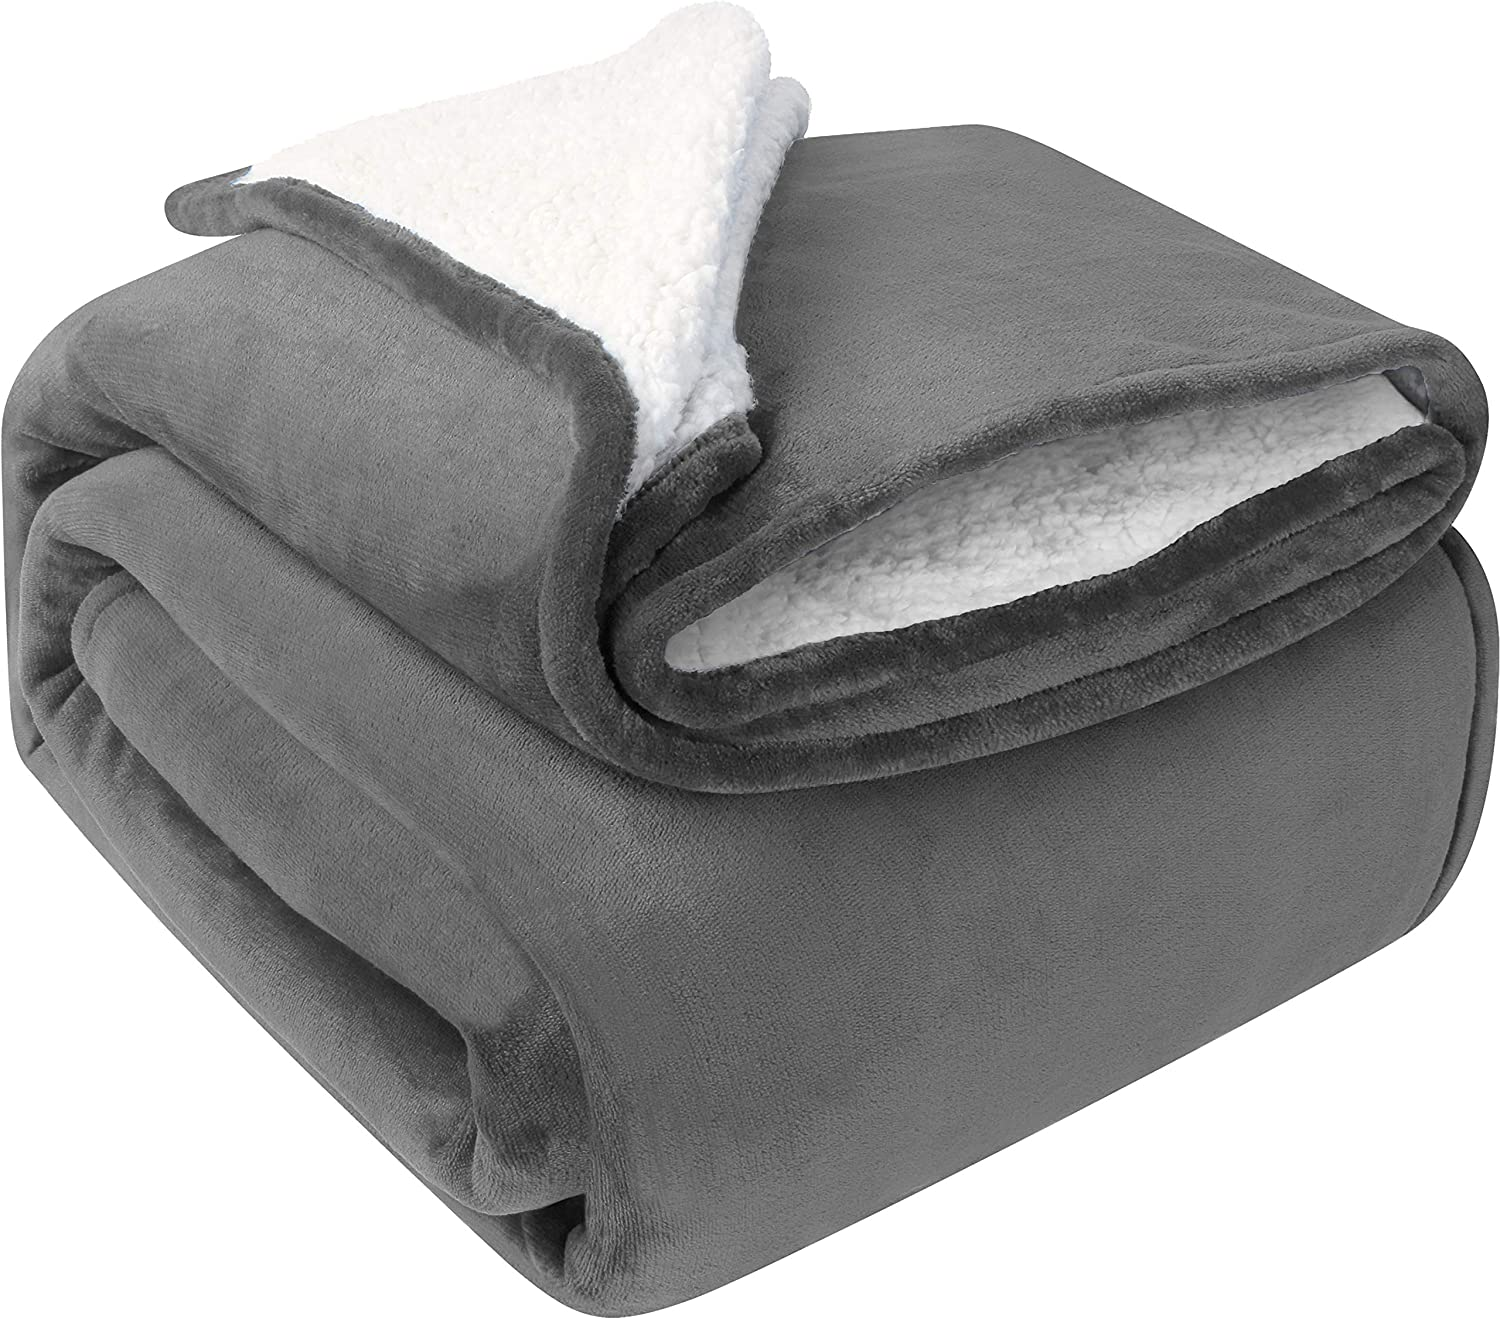 Utopia Bedding Sherpa 5 popular Bed Max 66% OFF Blanket Queen B Grey Plush 480GSM Size